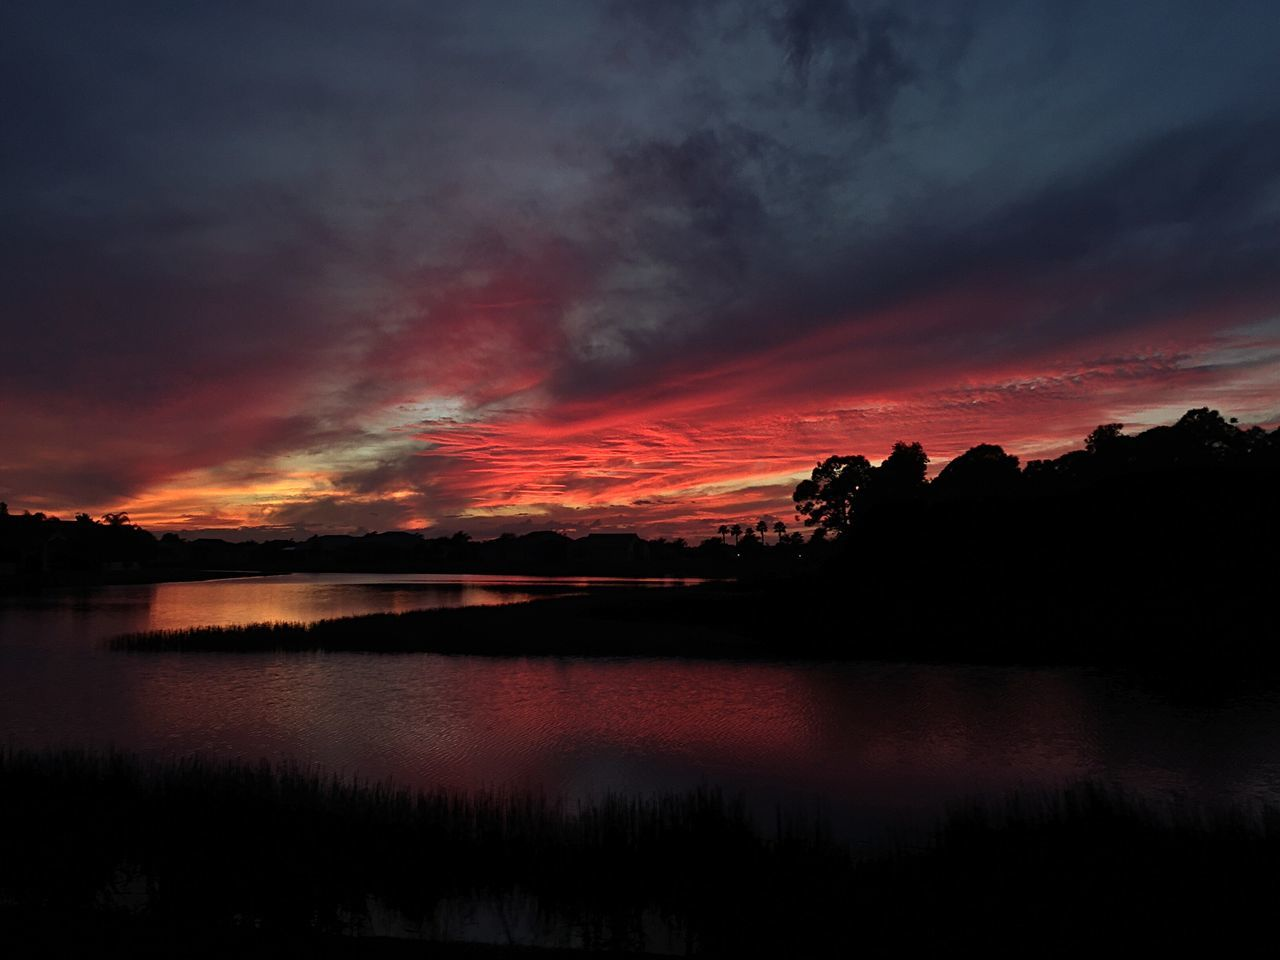 sunset, beauty in nature, scenics, tranquil scene, nature, tranquility, dramatic sky, sky, silhouette, reflection, majestic, cloud - sky, orange color, idyllic, no people, water, lake, tree, awe, outdoors